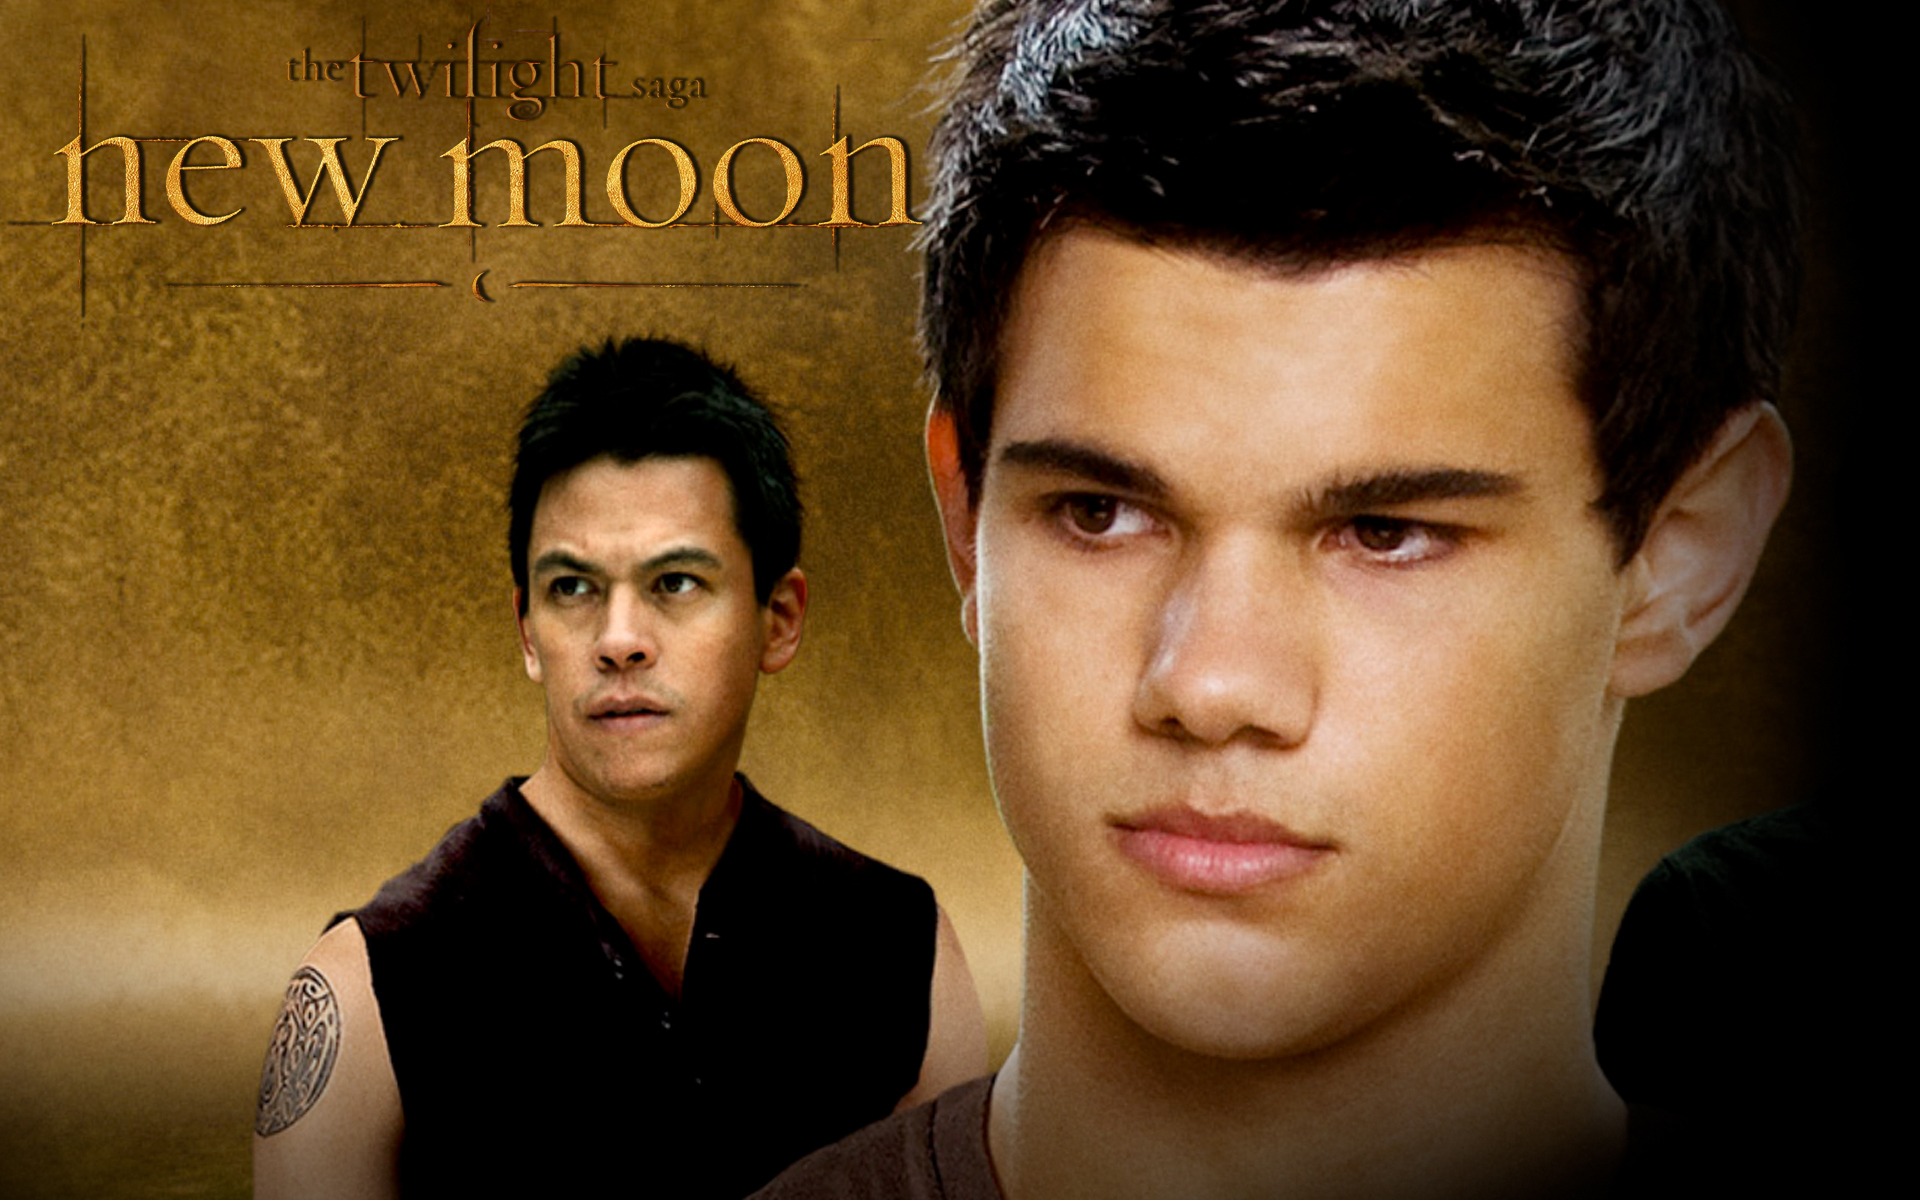 jacob black - twilight-series wallpaper